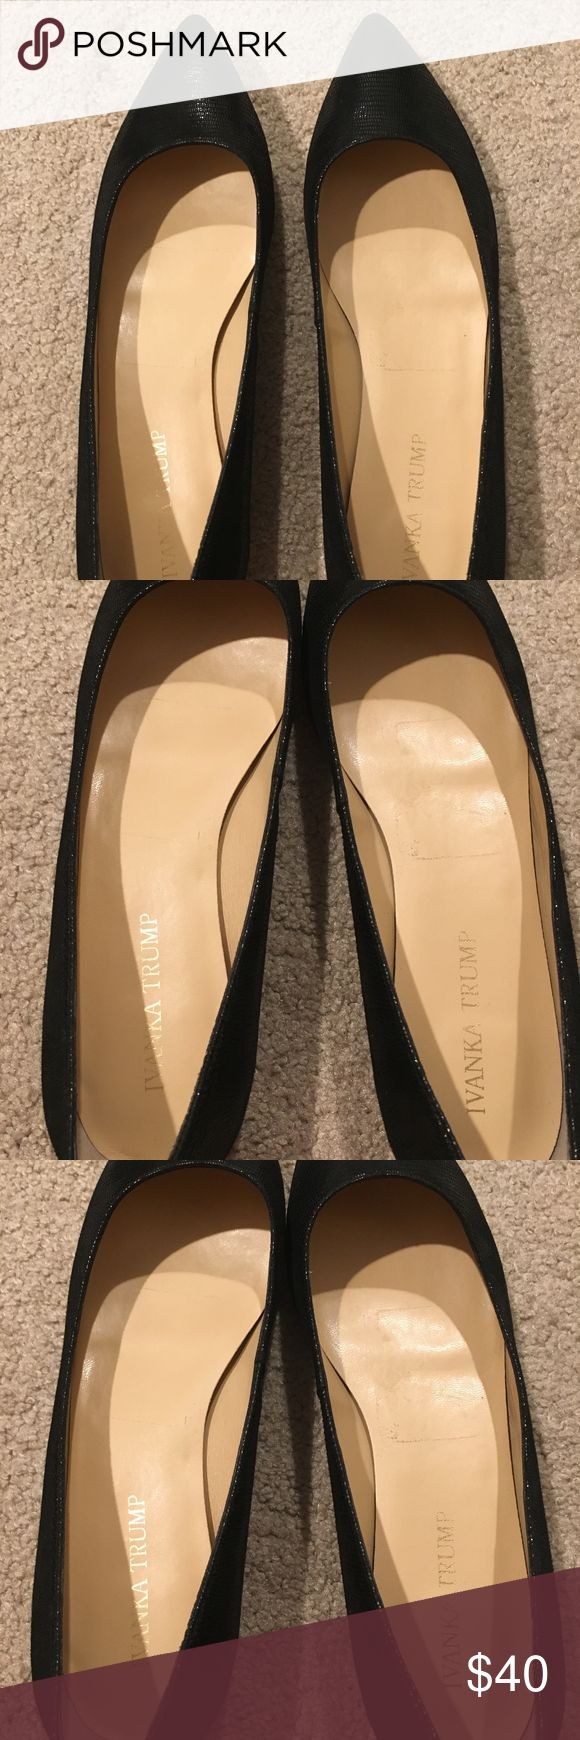 Ivanka Trump Black Flats Ivanka Trump Chic 4 Black Flats for sale. Beautiful color with a small pattern. Perfect condition with extremely minimal wear, only wear is on the bottom of the shoe. Very comfortable with a small wedge at the bottom. Size 9. Exact shoe currently found from Zappos for $99.95. Ivanka Trump Shoes Flats & Loafers